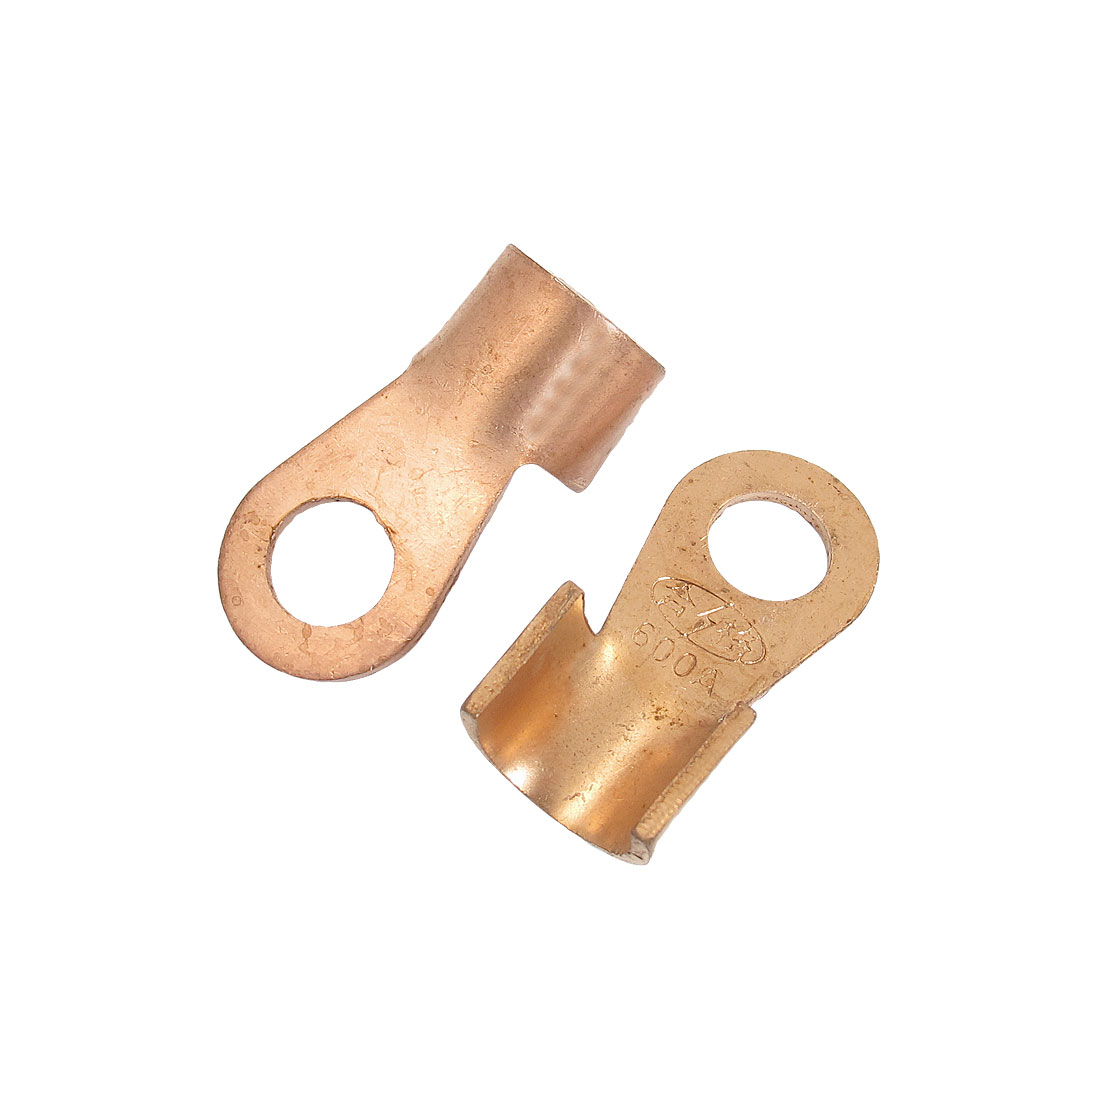 2 Pcs 22mm 600A Open Cable Connector Ring Tongue Copper Passing Through Terminals